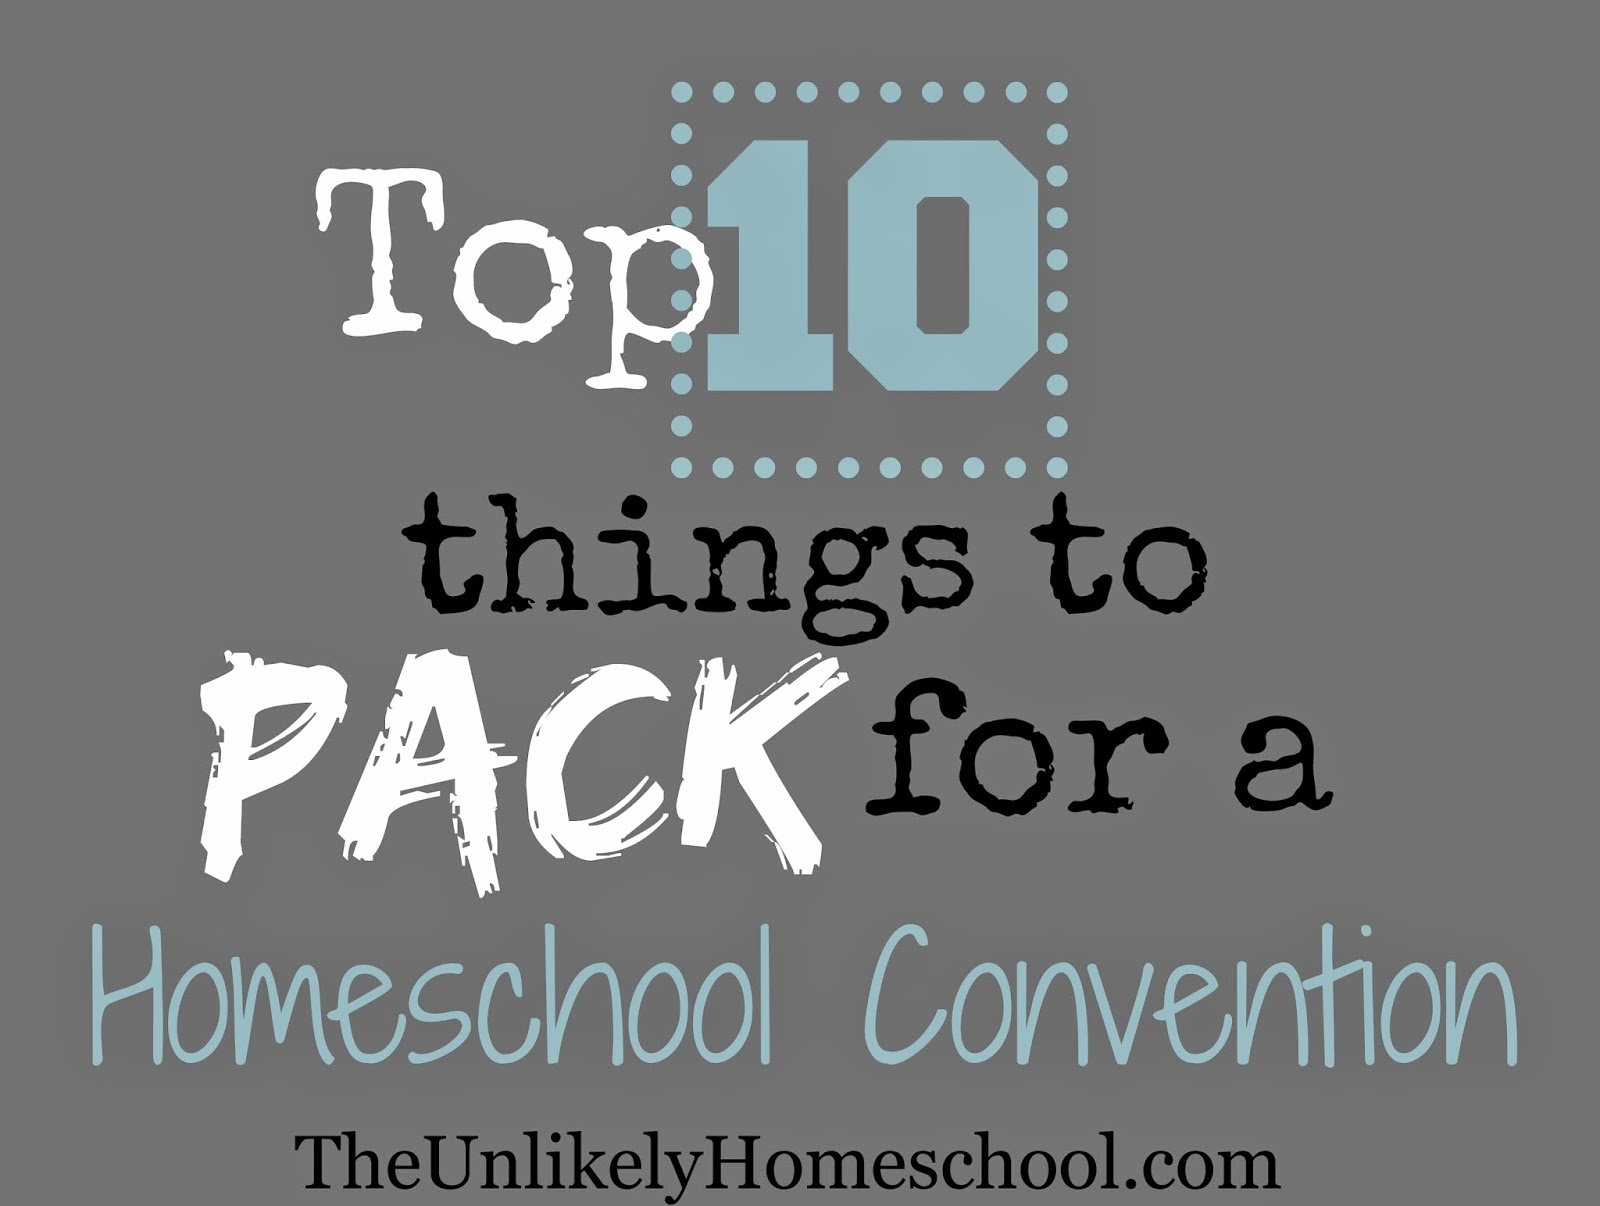 Top 10 Things to pack for a Homeschool Convention {The Unlikely Homeschool}